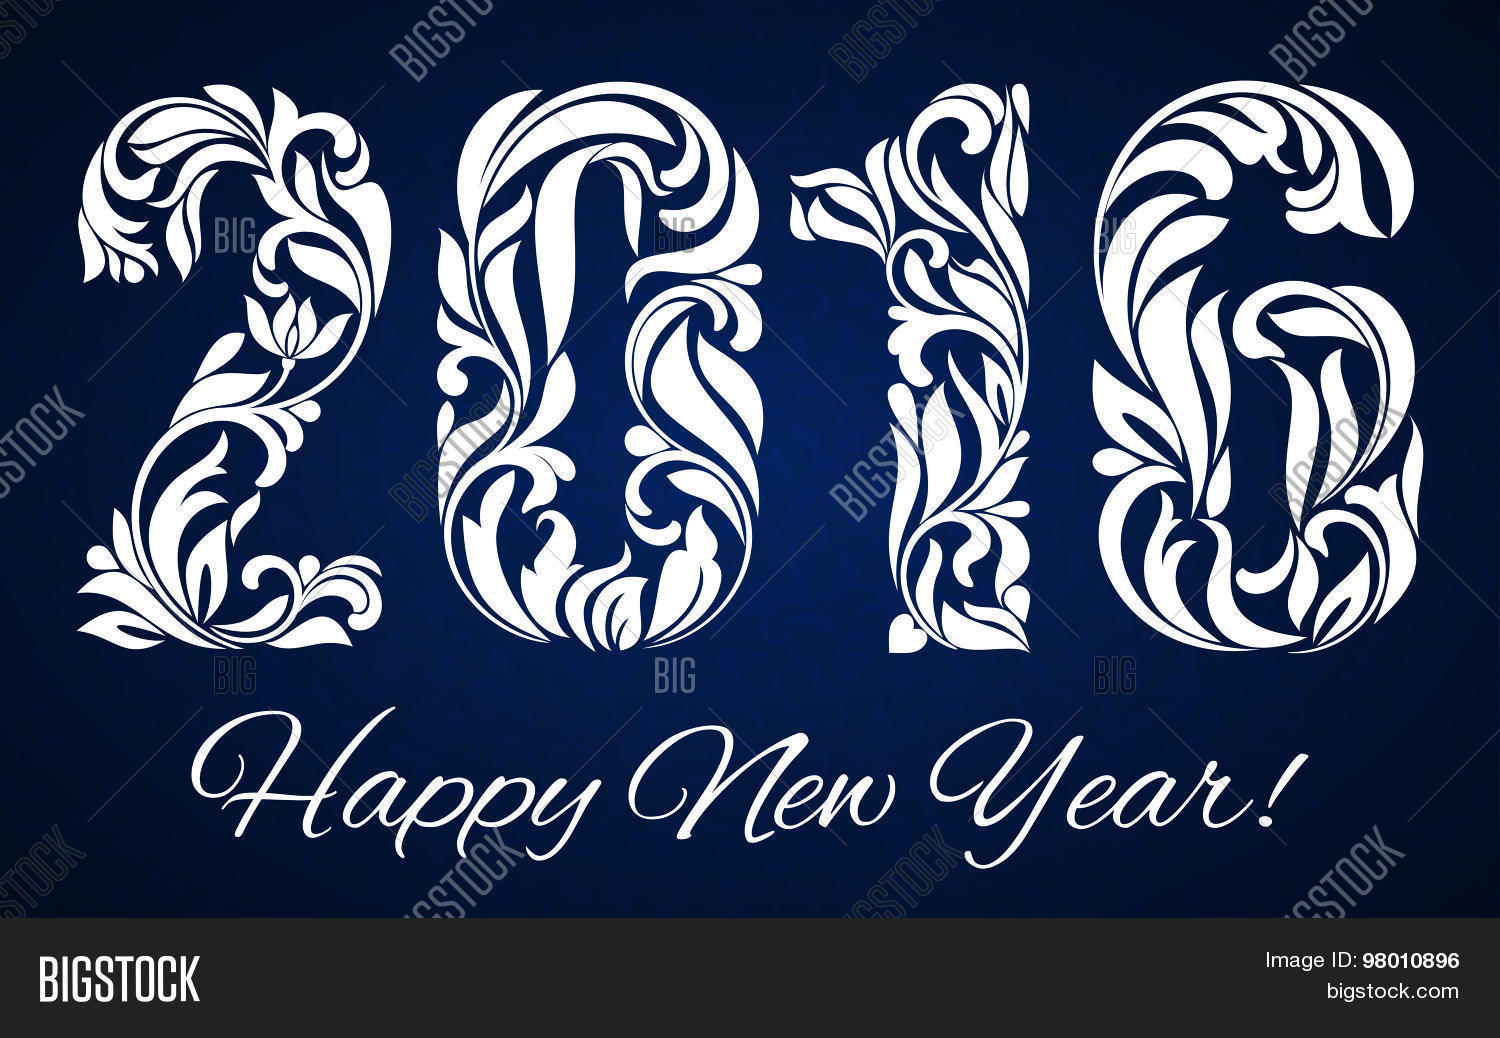 decorative fonts 2016 decorated with a decorative pattern for happy new year celebrations - Decorative Fonts